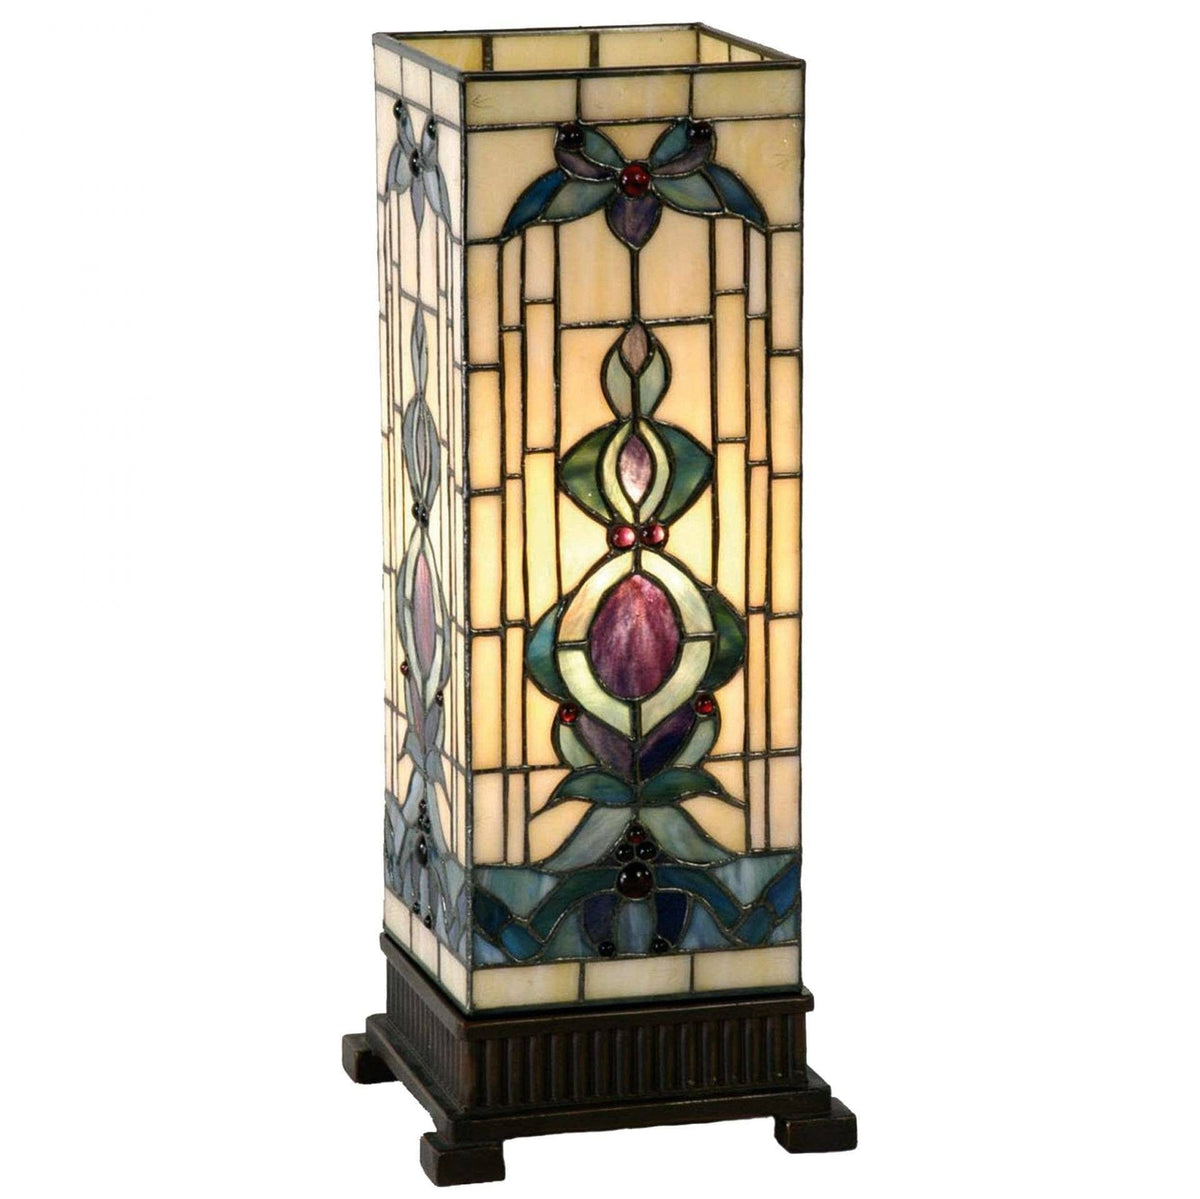 Tiffany Square Table Lamps - Regency Tiffany Large Square Table Lamp